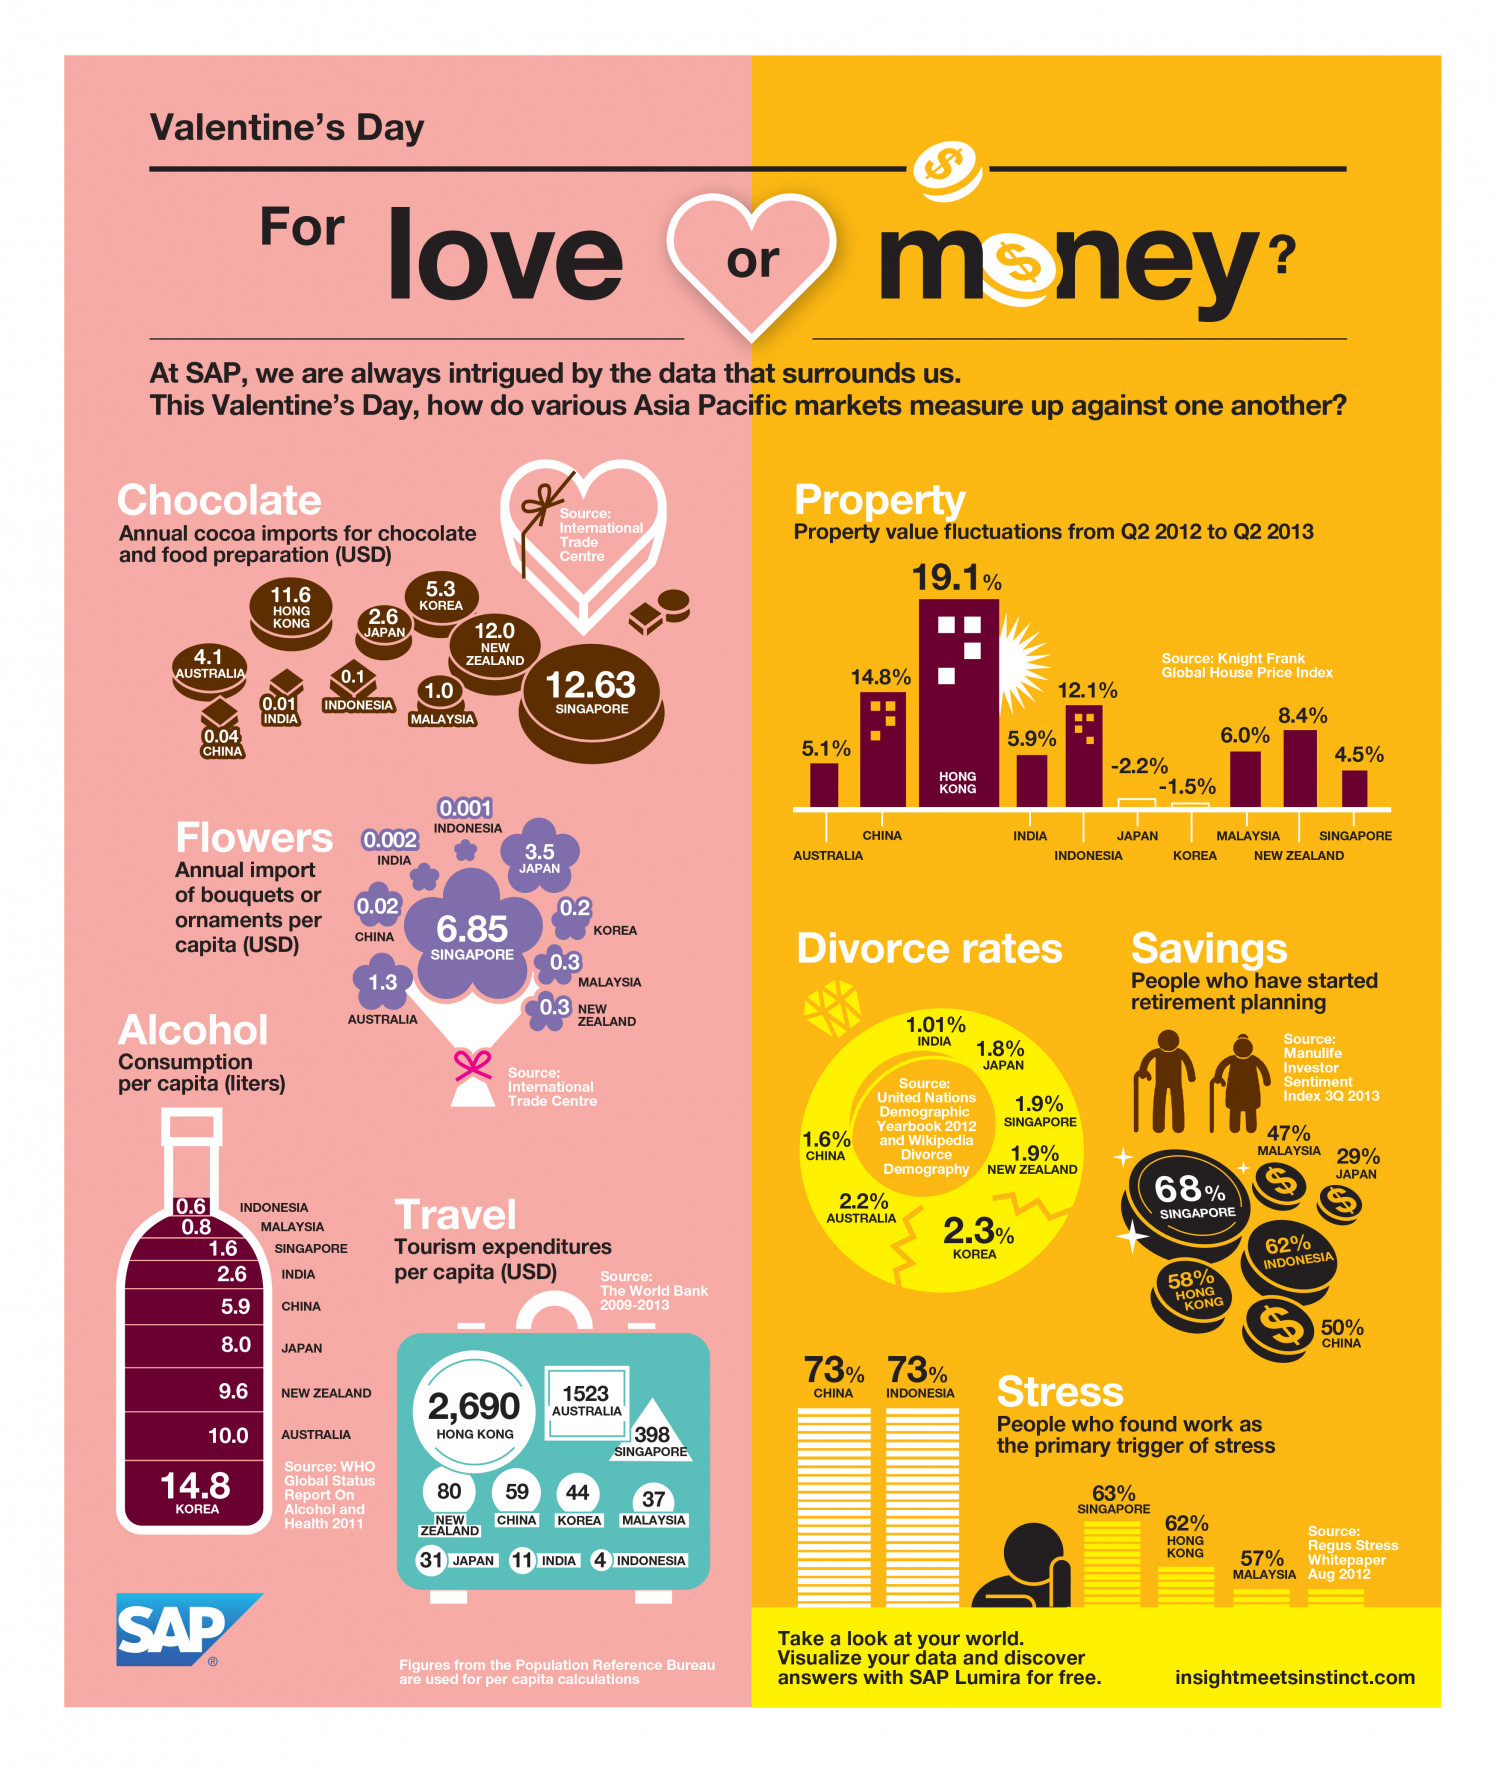 f6be04dadc7d Valentine s Day  For love or money  Infographic